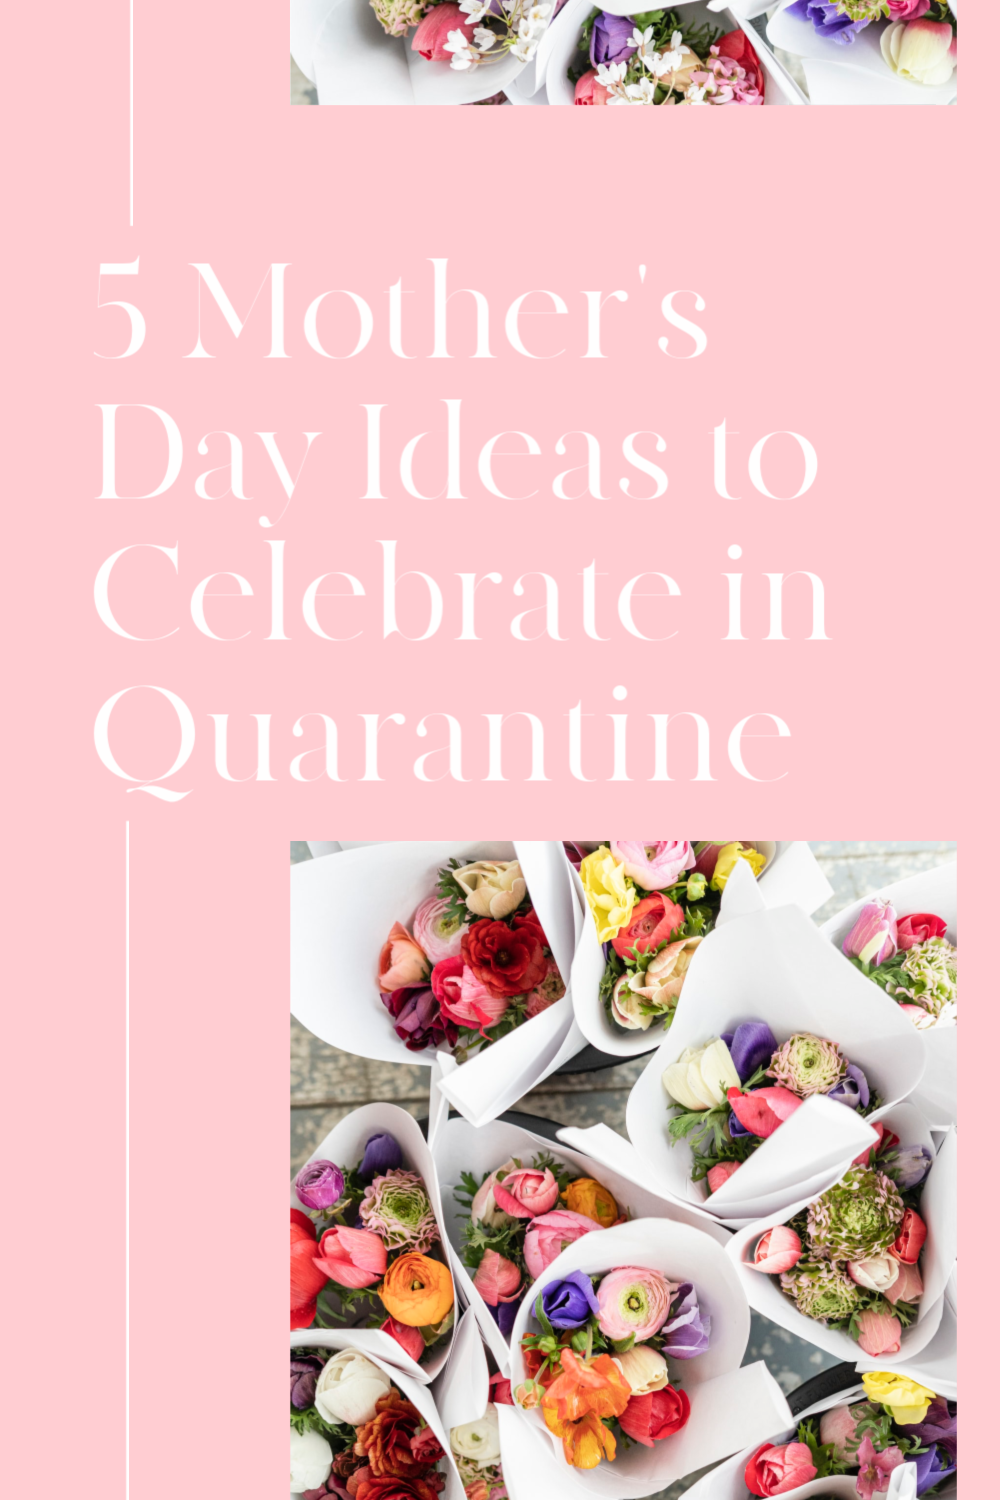 5 Mother's Day Ideas to Celebrate in Quarantine, a blog post by Liz in Los Angeles: an image of flowers